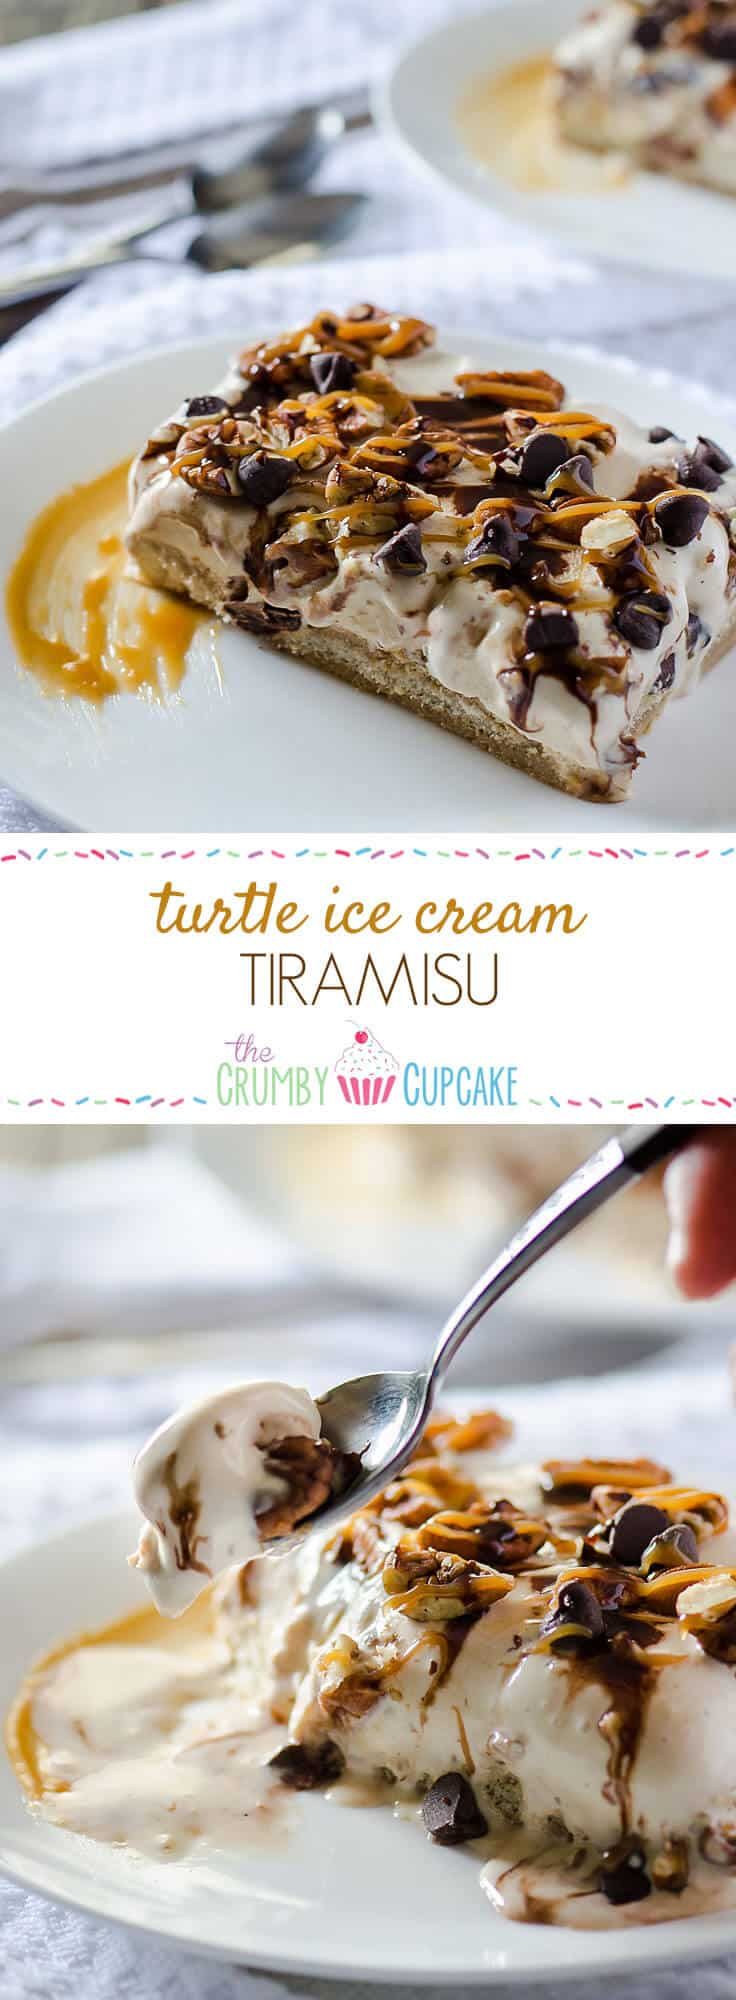 How do you make an already delicious dessert even better? Add a few more ingredients and turn it into a twisted frozen classic - Turtle Ice Cream Tiramisu!